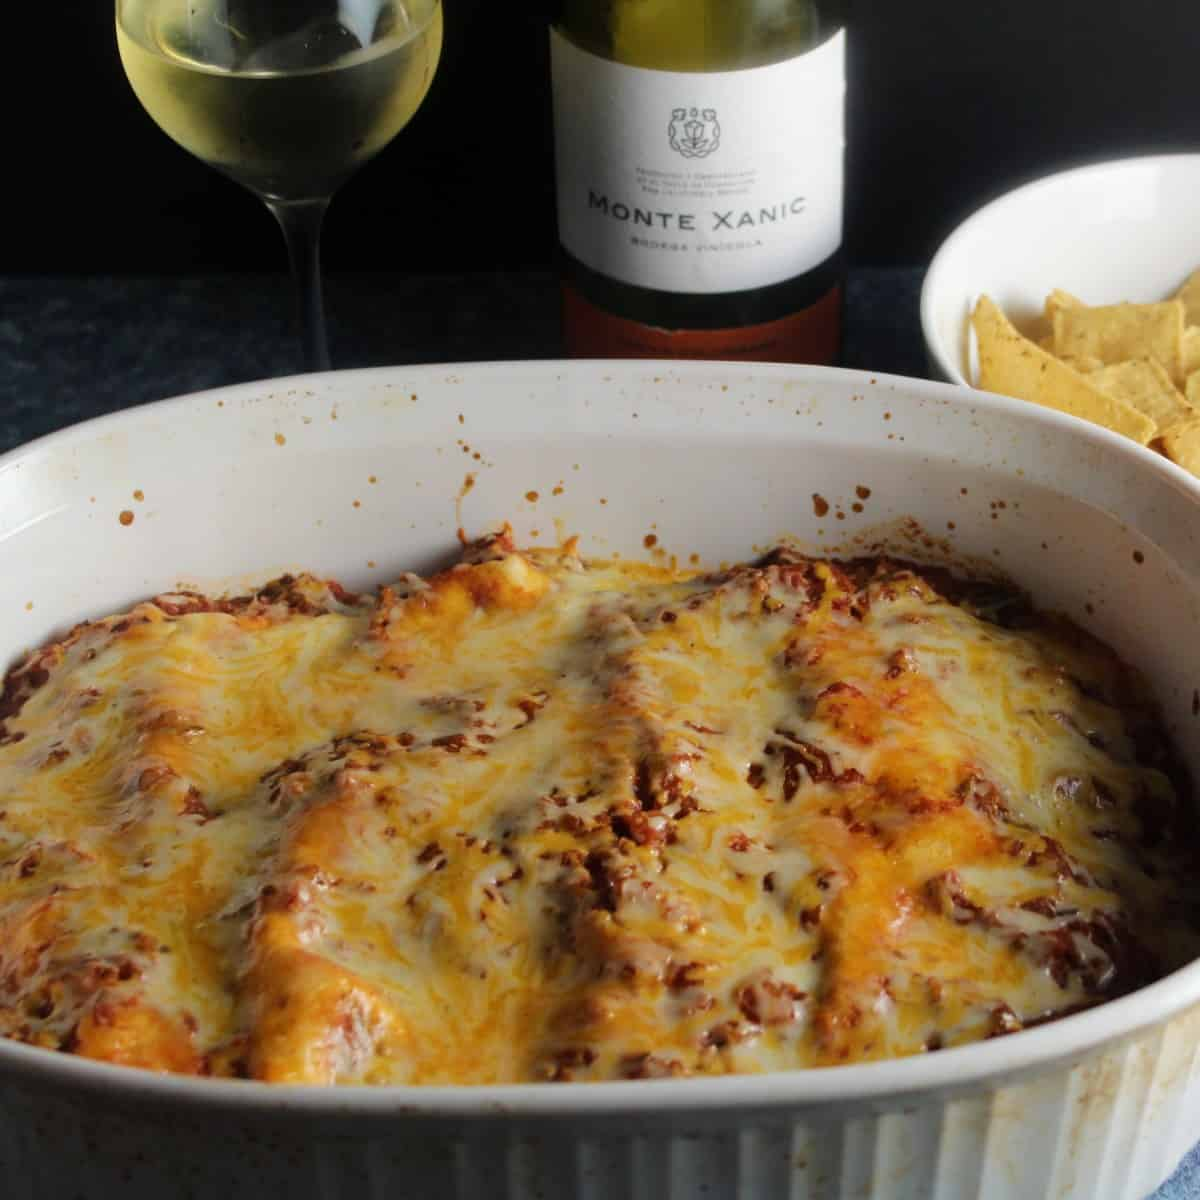 turkey enchiladas topped with sauce and melted cheese, in a baking dish with white wine in the background.